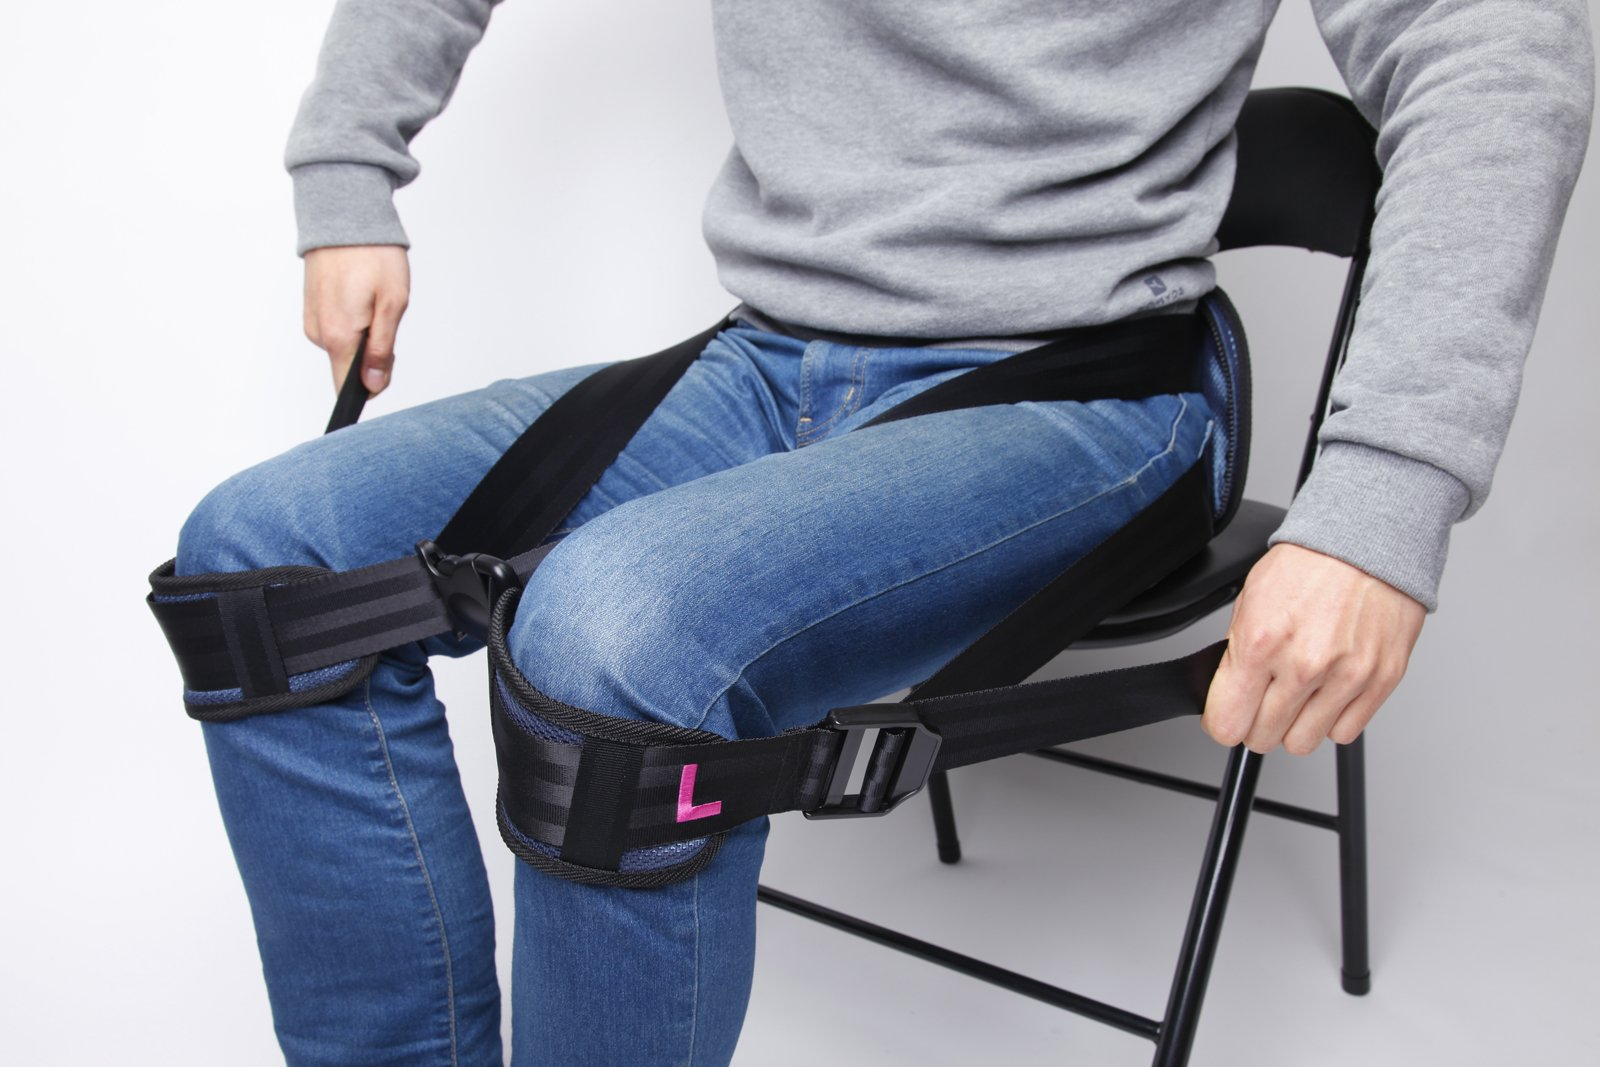 Everyway4all EverTrac Taiwan LT100 Lumbar back support adjustable personal belt by Everyway4all (Image #7)